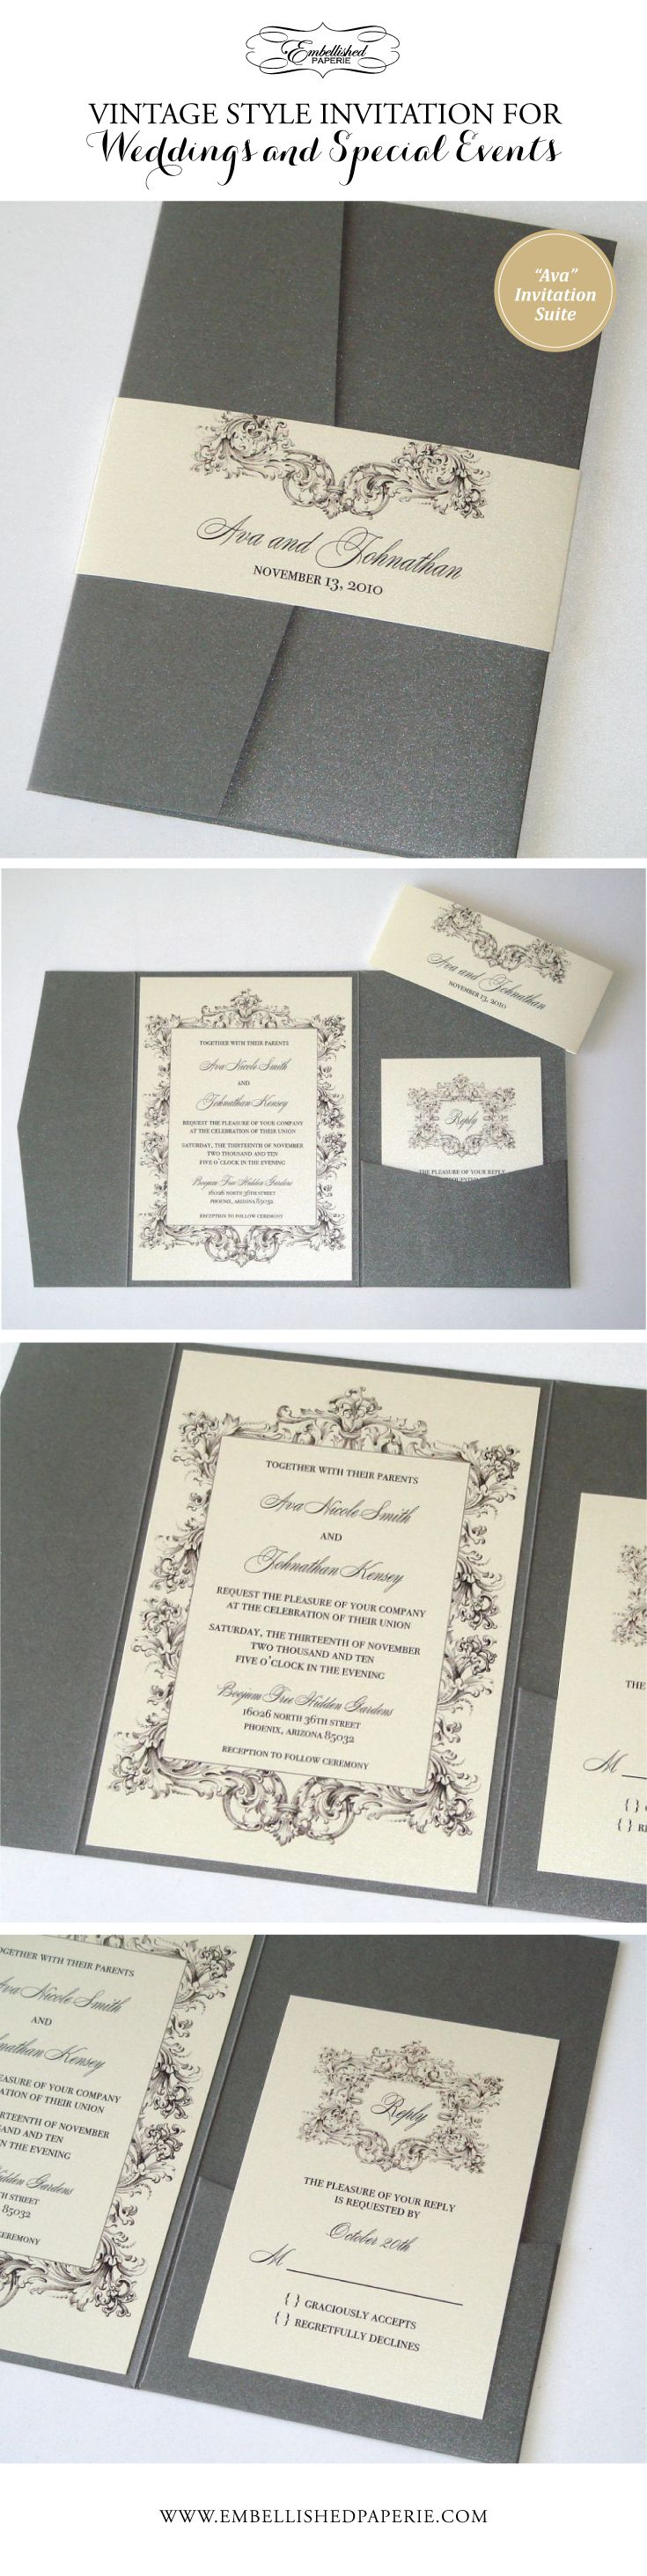 Vintage Wedding Invitation Elegant Wedding Invitation